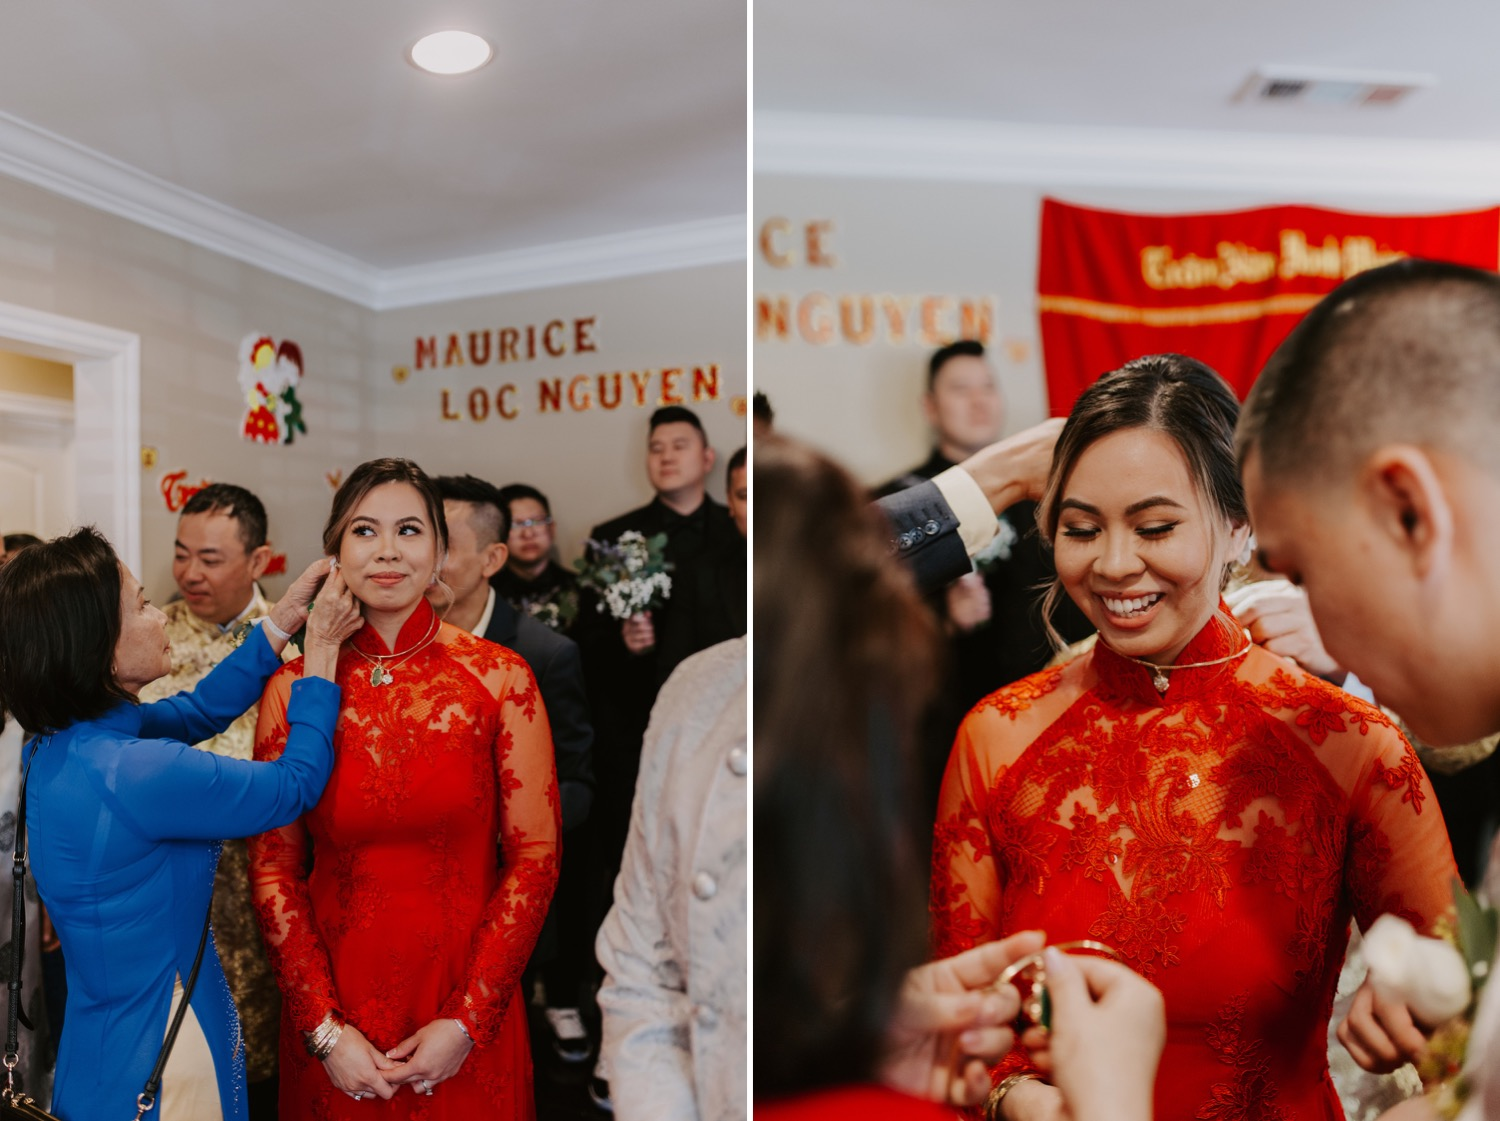 twenty-eight-irvine-wedding-california-traditional-vietnamese-tea-ceremony07.jpg